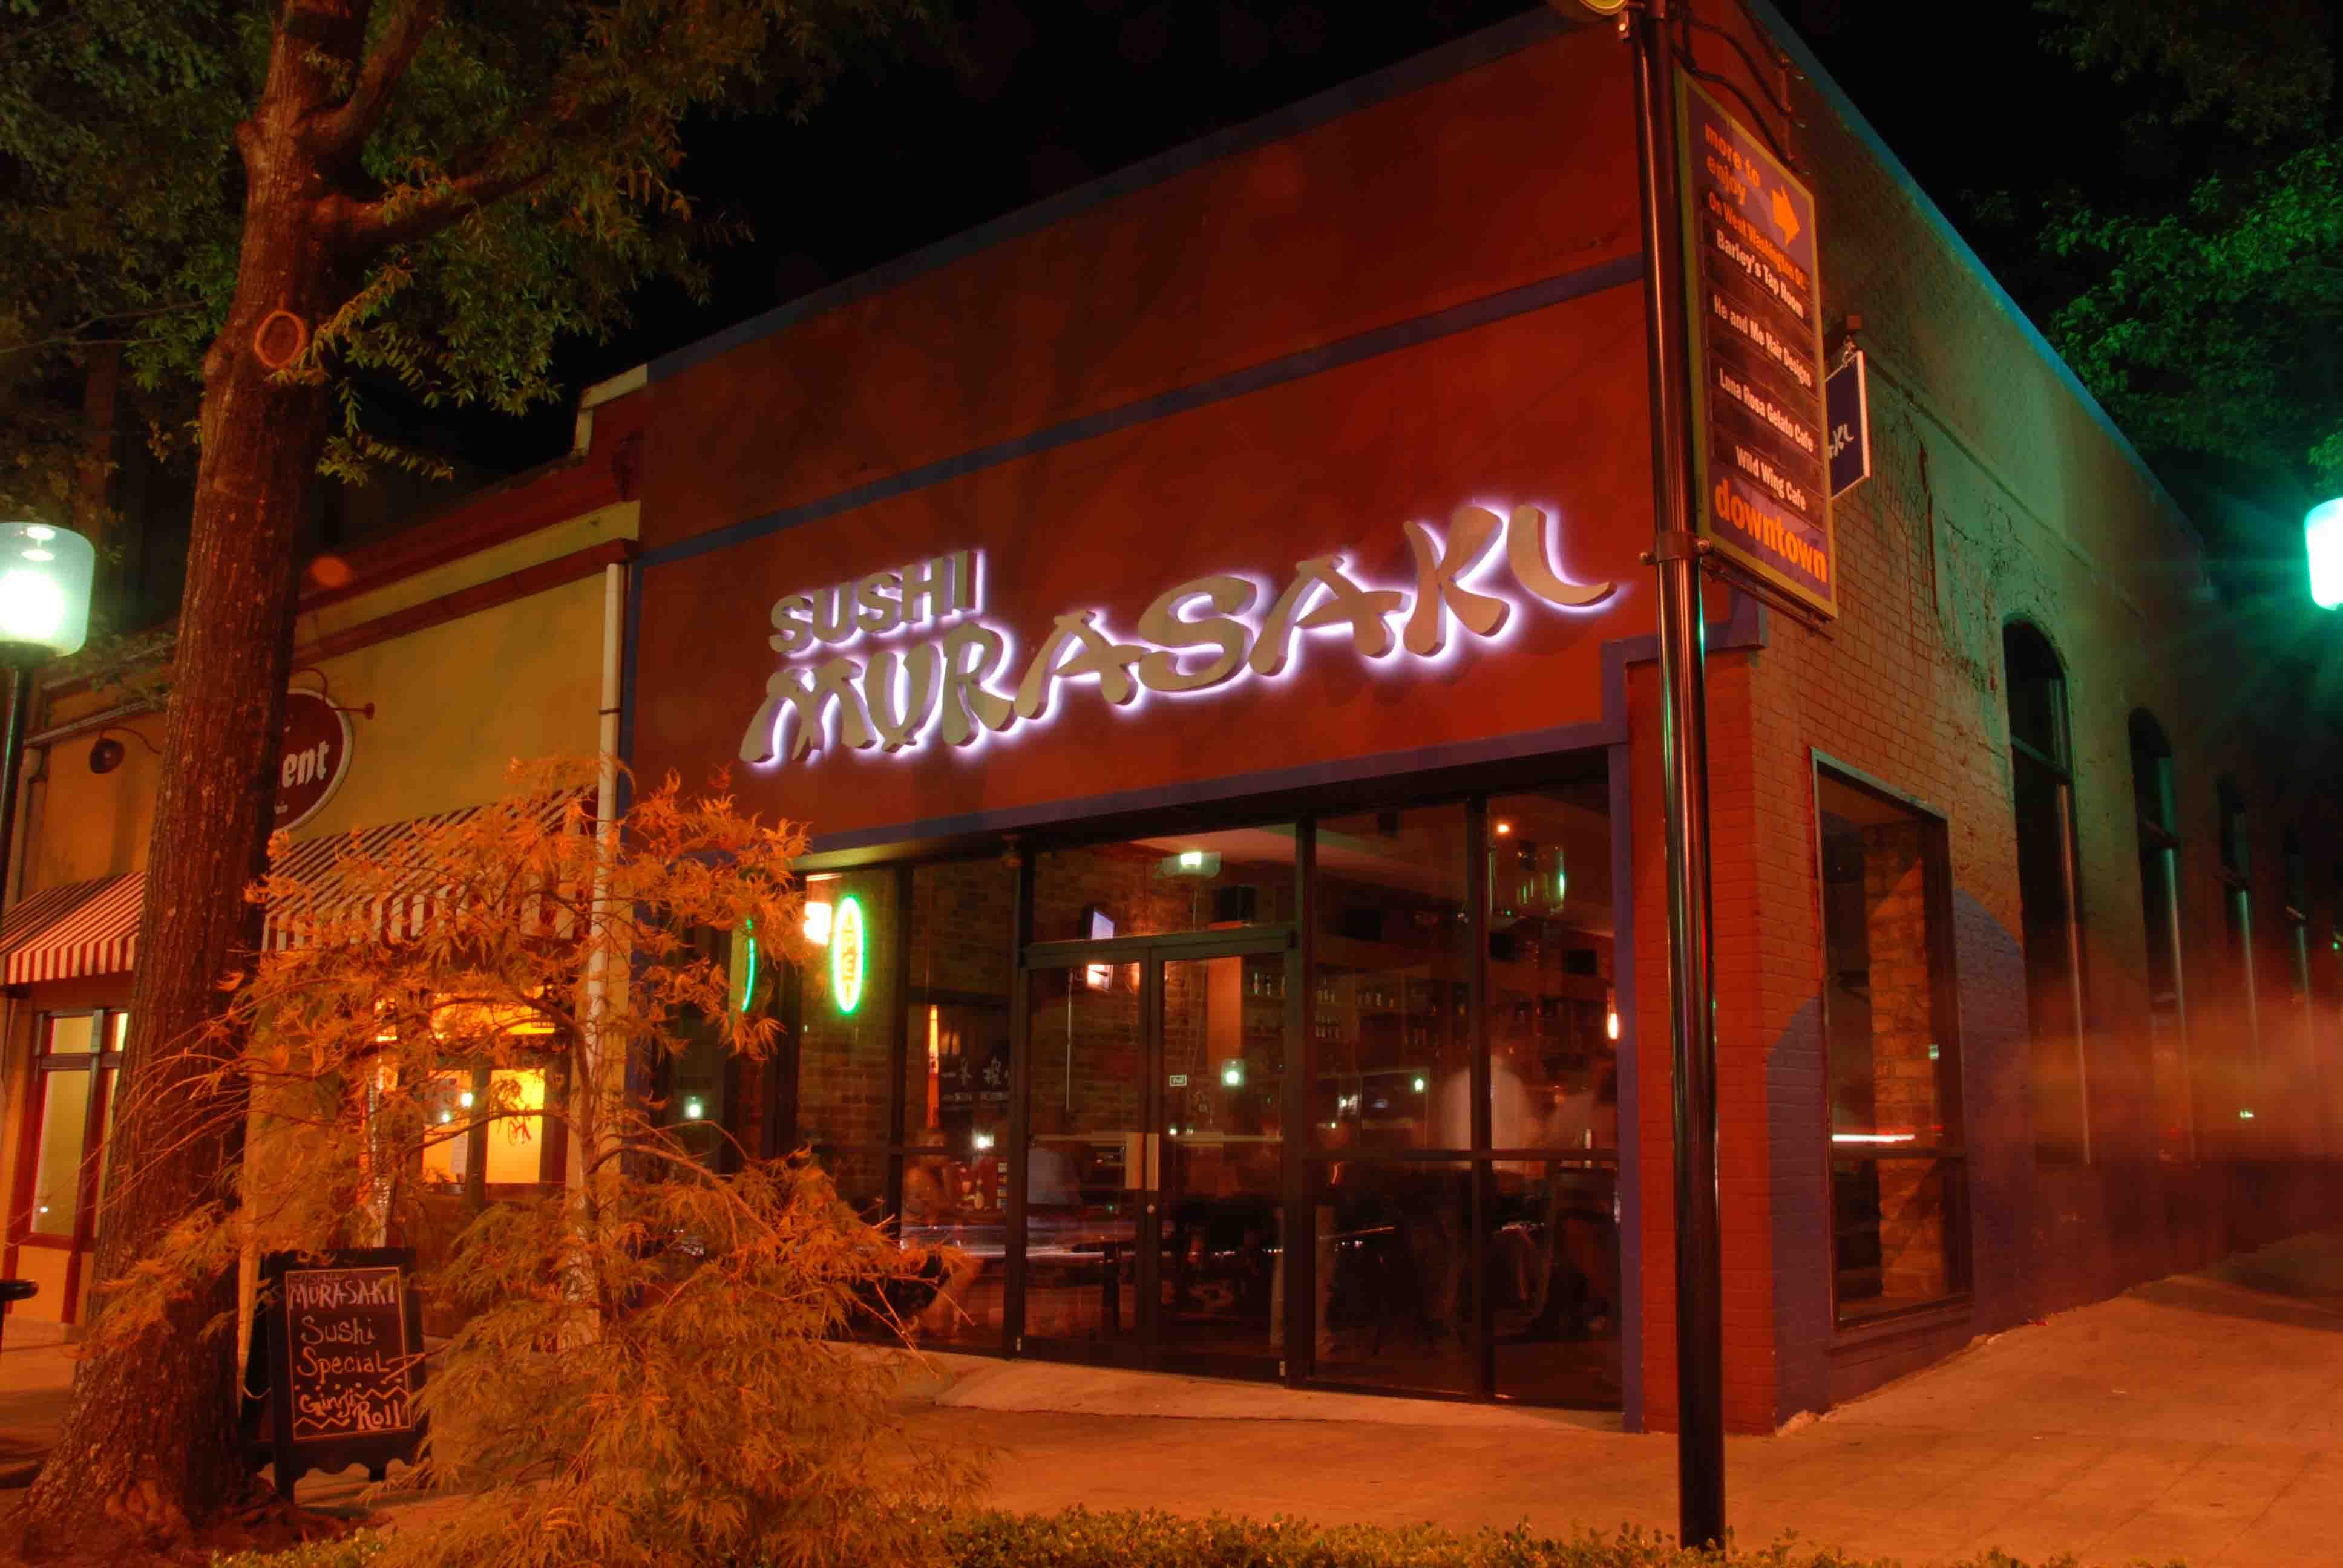 Murasaki Is One Of The Only Sushi Restaurants In Greenville That S Open On Sundays Love